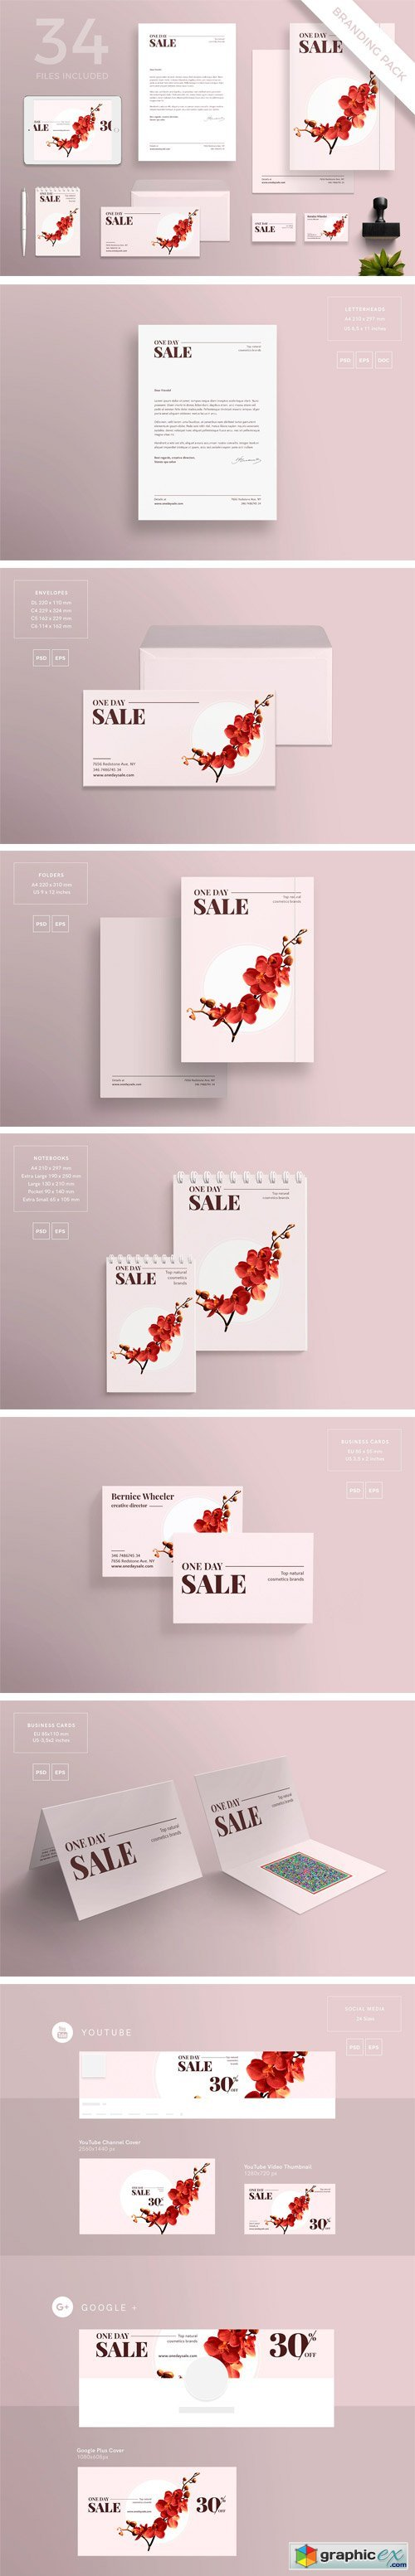 Branding Pack | One Day Sale